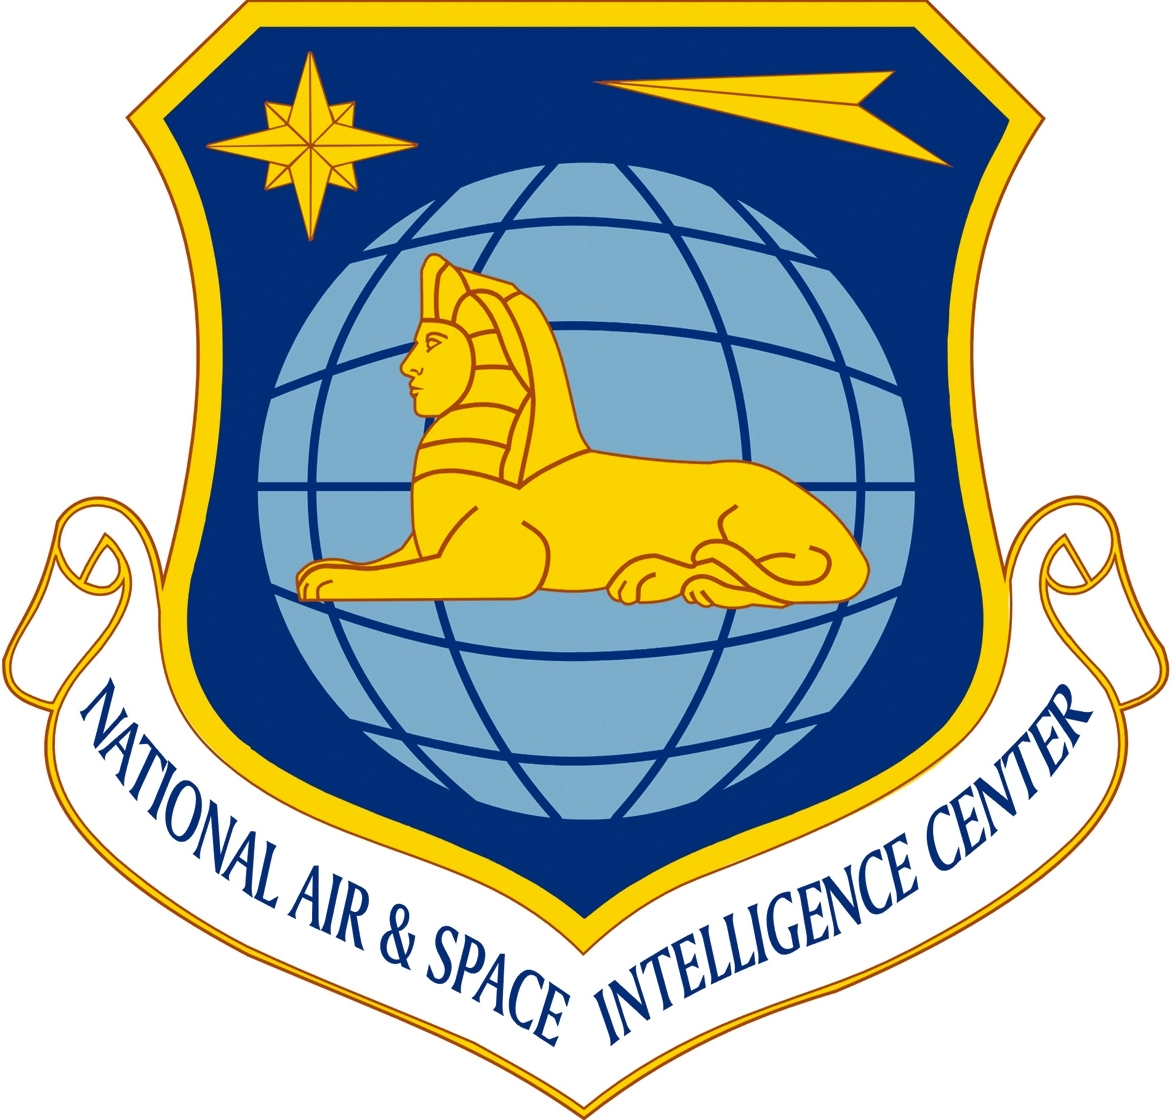 National Air and Space Intelligence Center.